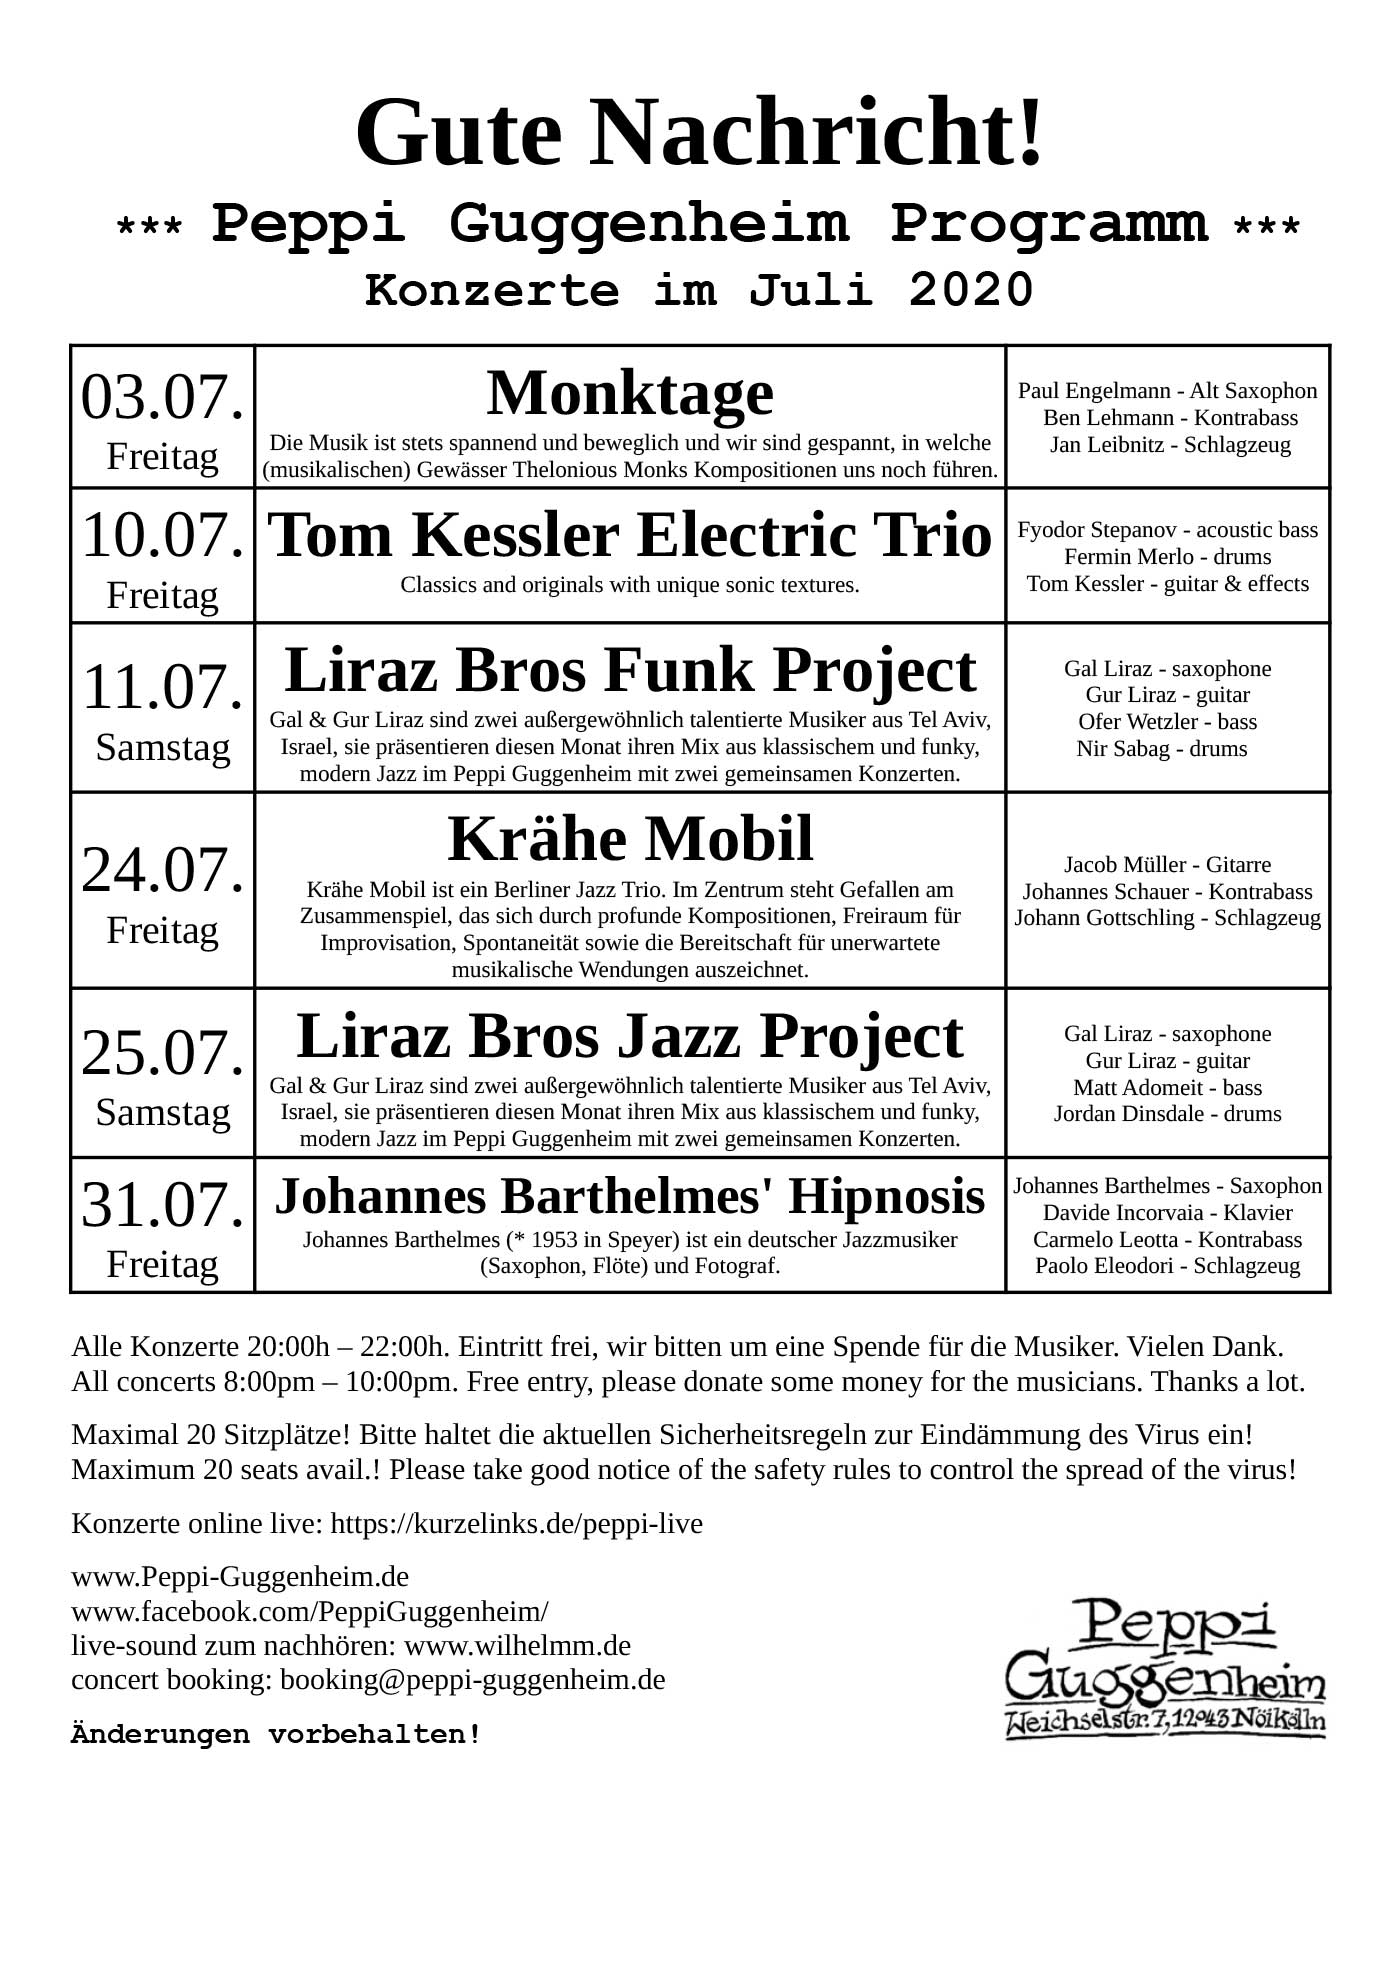 Peppi Guggenheim program 11/17